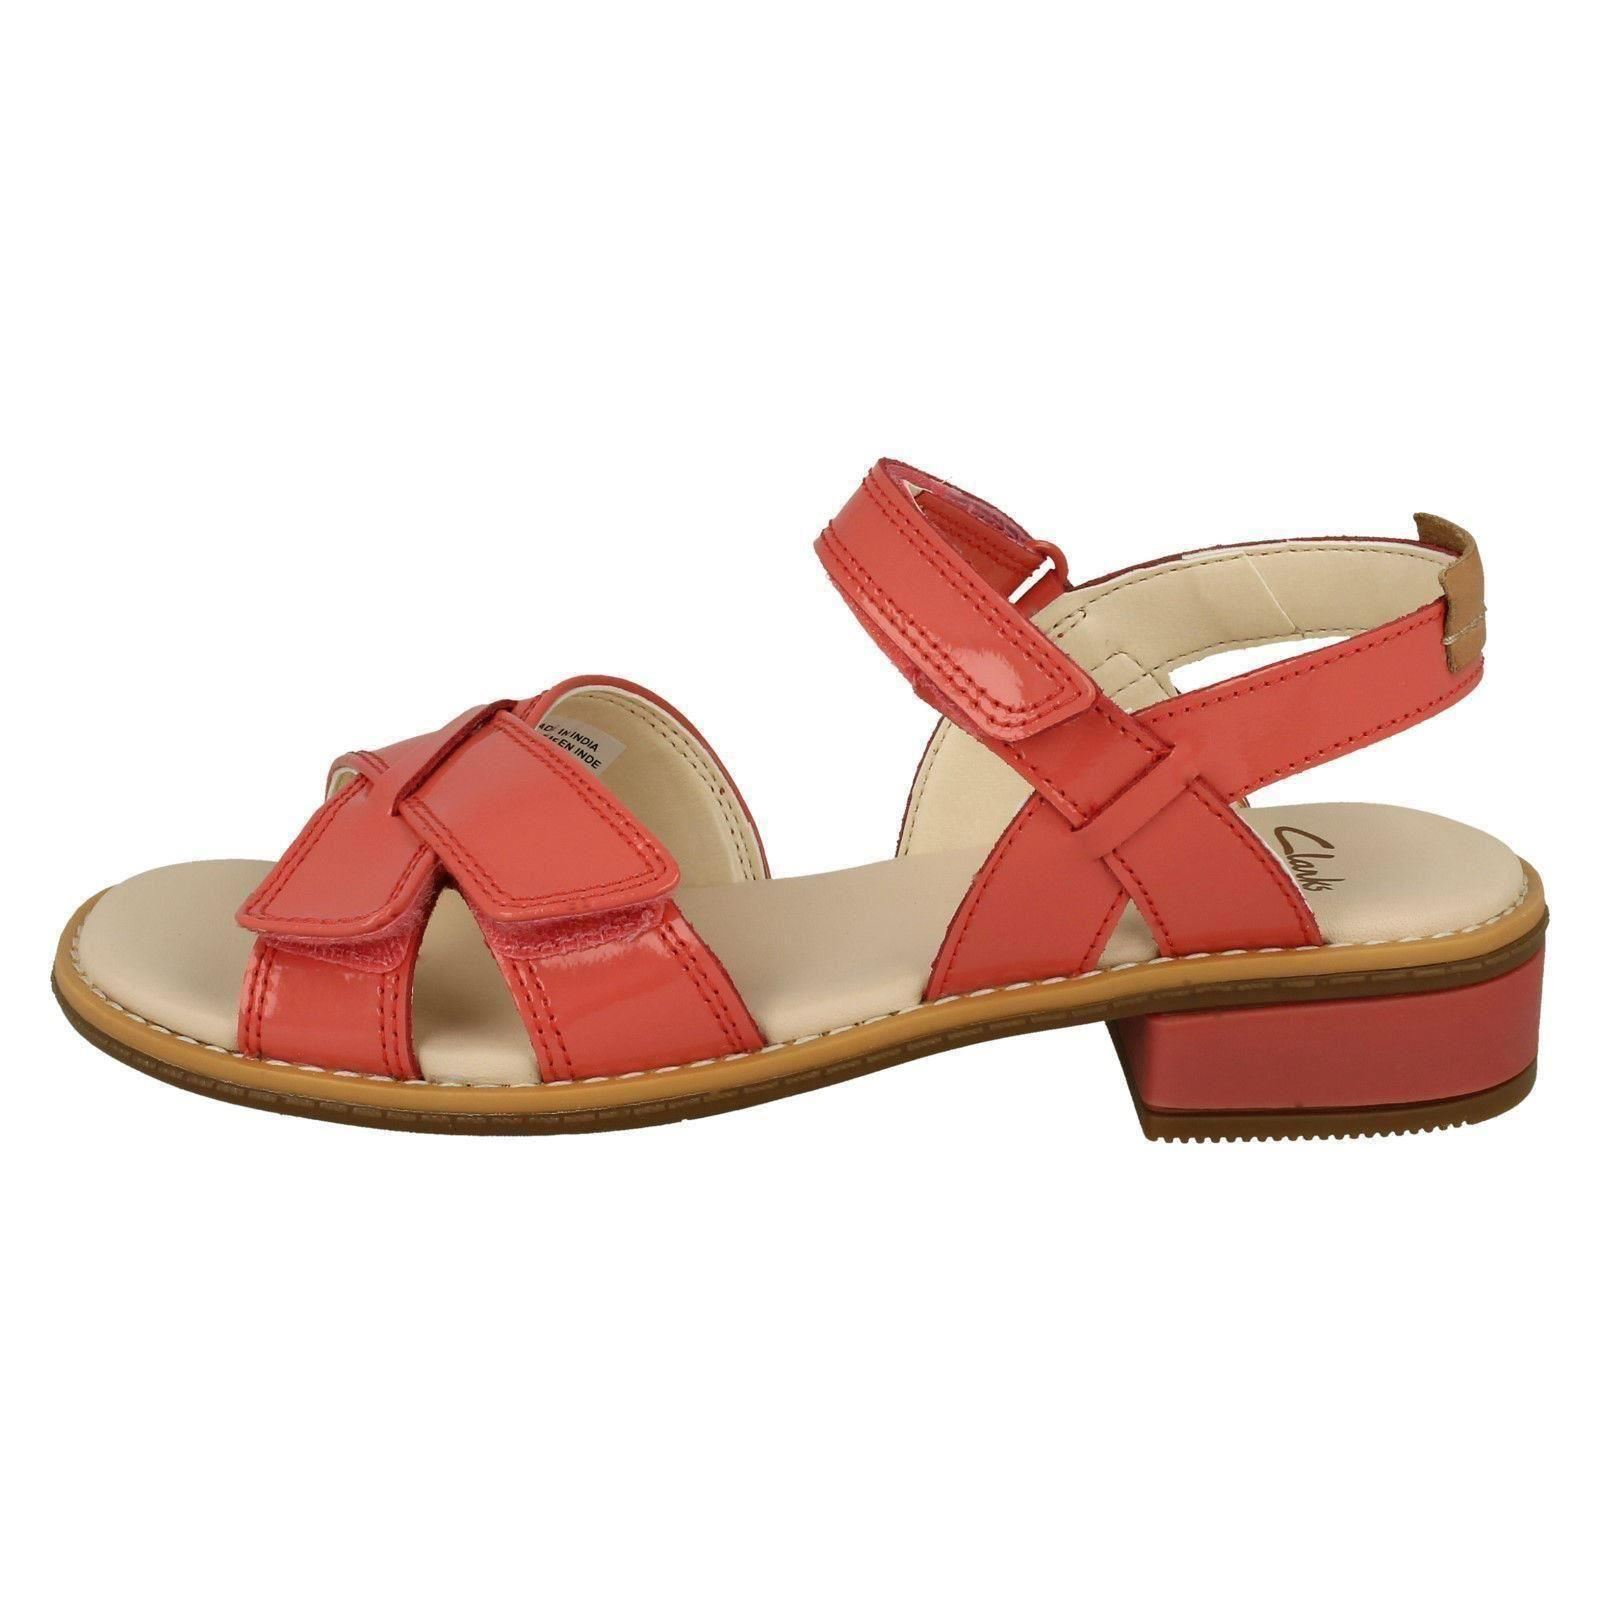 ddade53746217 Girls Clarks Patent Leather Casual Sandals Style - Darcy Charm Coral Patent  UK 4 F. About this product. Picture 1 of 10  Picture 2 of 10  Picture 3 of  10 ...